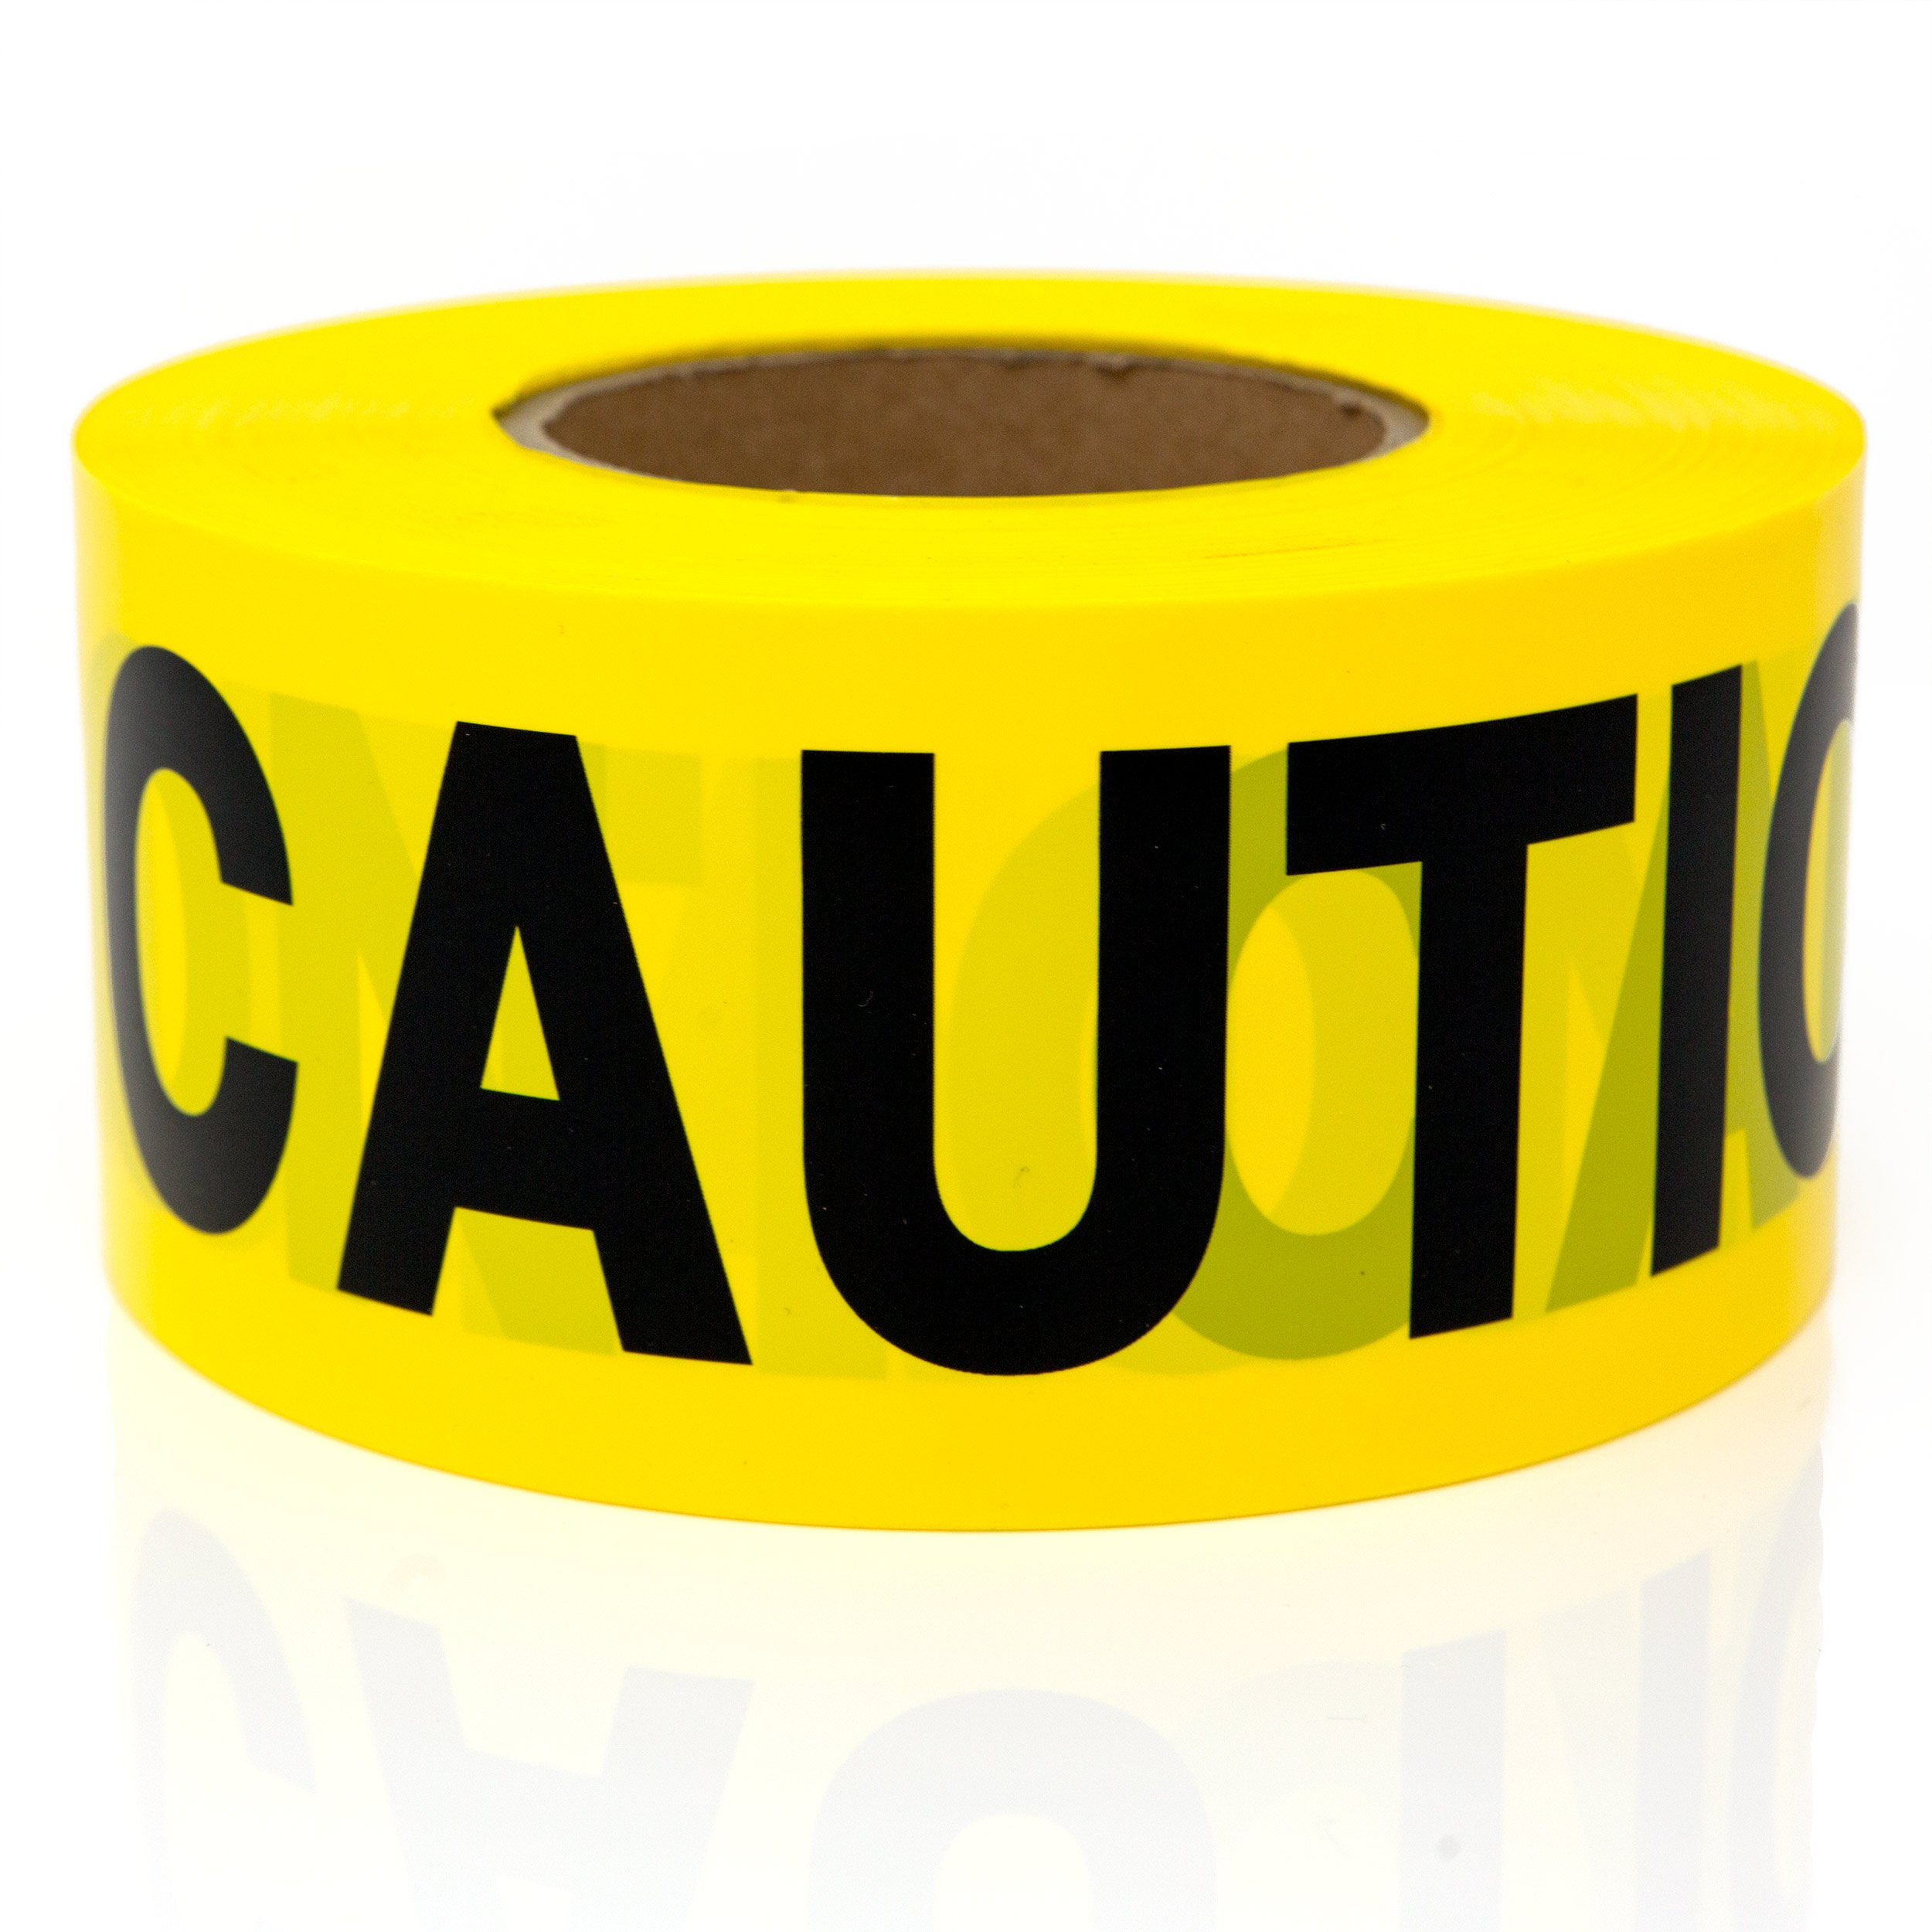 Premium Yellow Caution Tape - STRONGEST & THICKEST - 3'' x 1000 Feet Mega Roll - Tear & Weather Resistant Barricade Roll